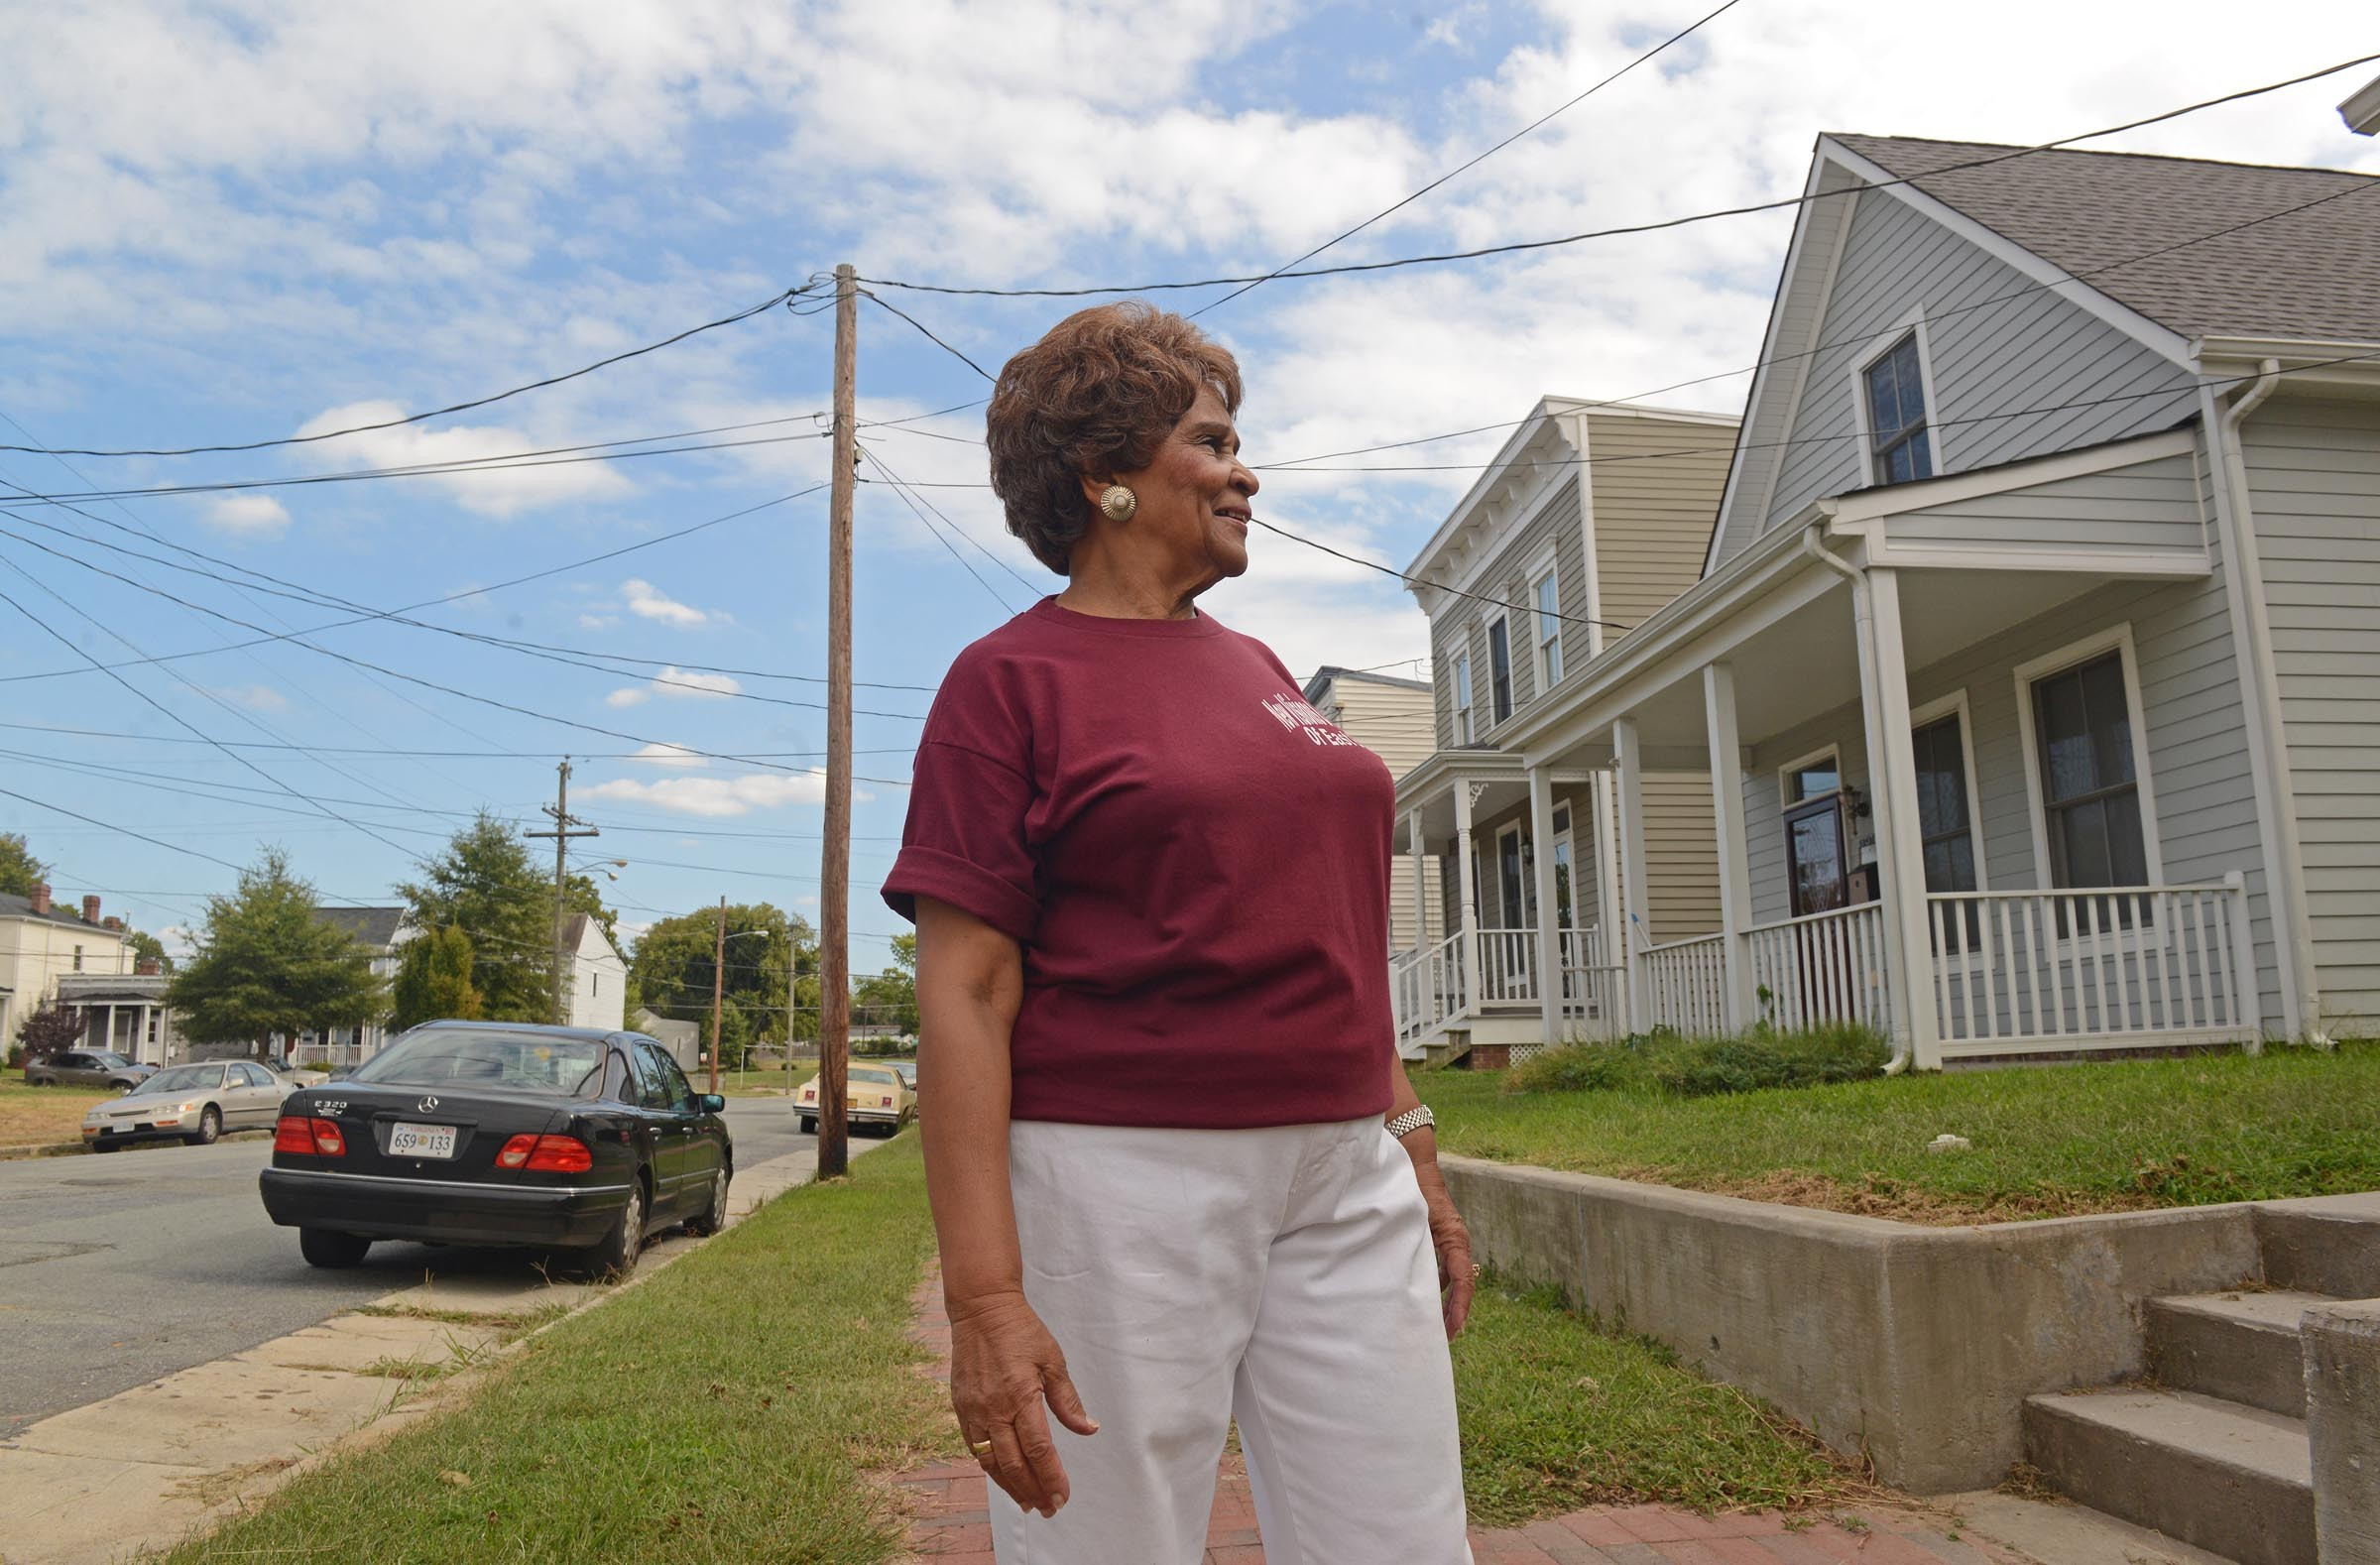 """Mary Thompson, president of the New Visions Civic League, has lived in Church Hill for 60 years. She loves her neighborhood, she says, and """"I just want everyone else to love it too."""" - SCOTT ELMQUIST"""